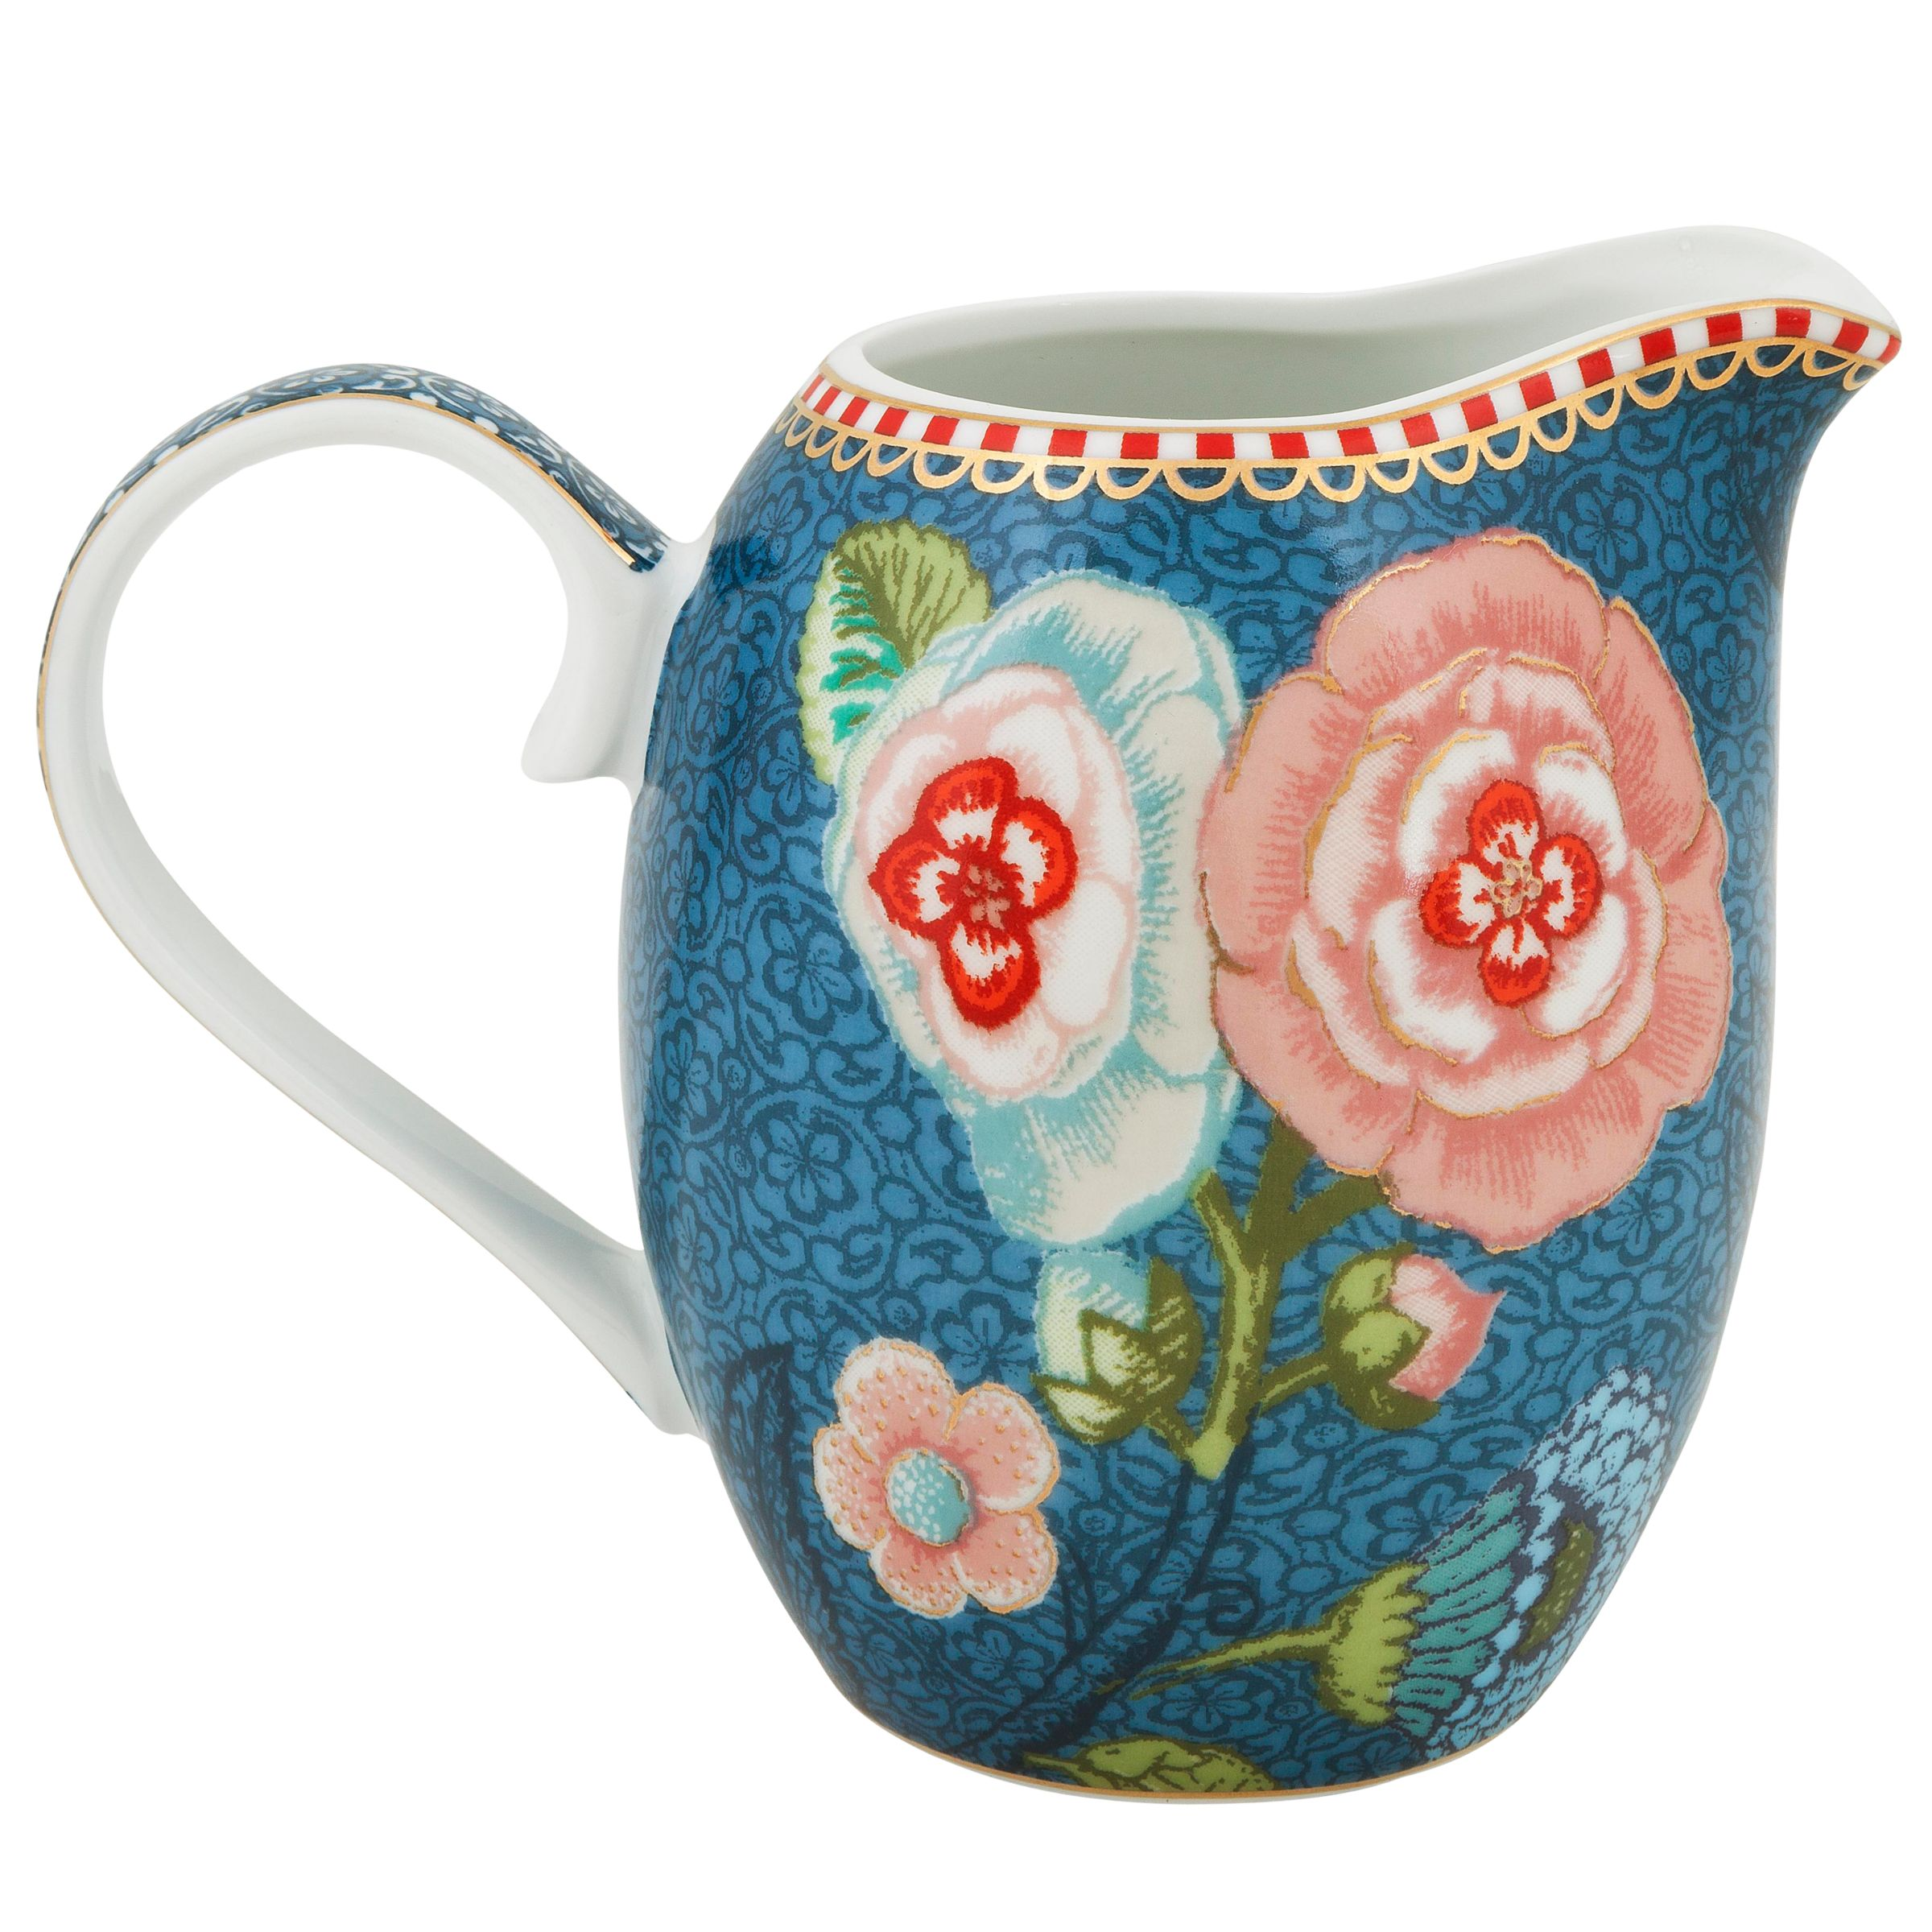 PiP Studio PiP Studio Spring To Life Small Jug, Blue